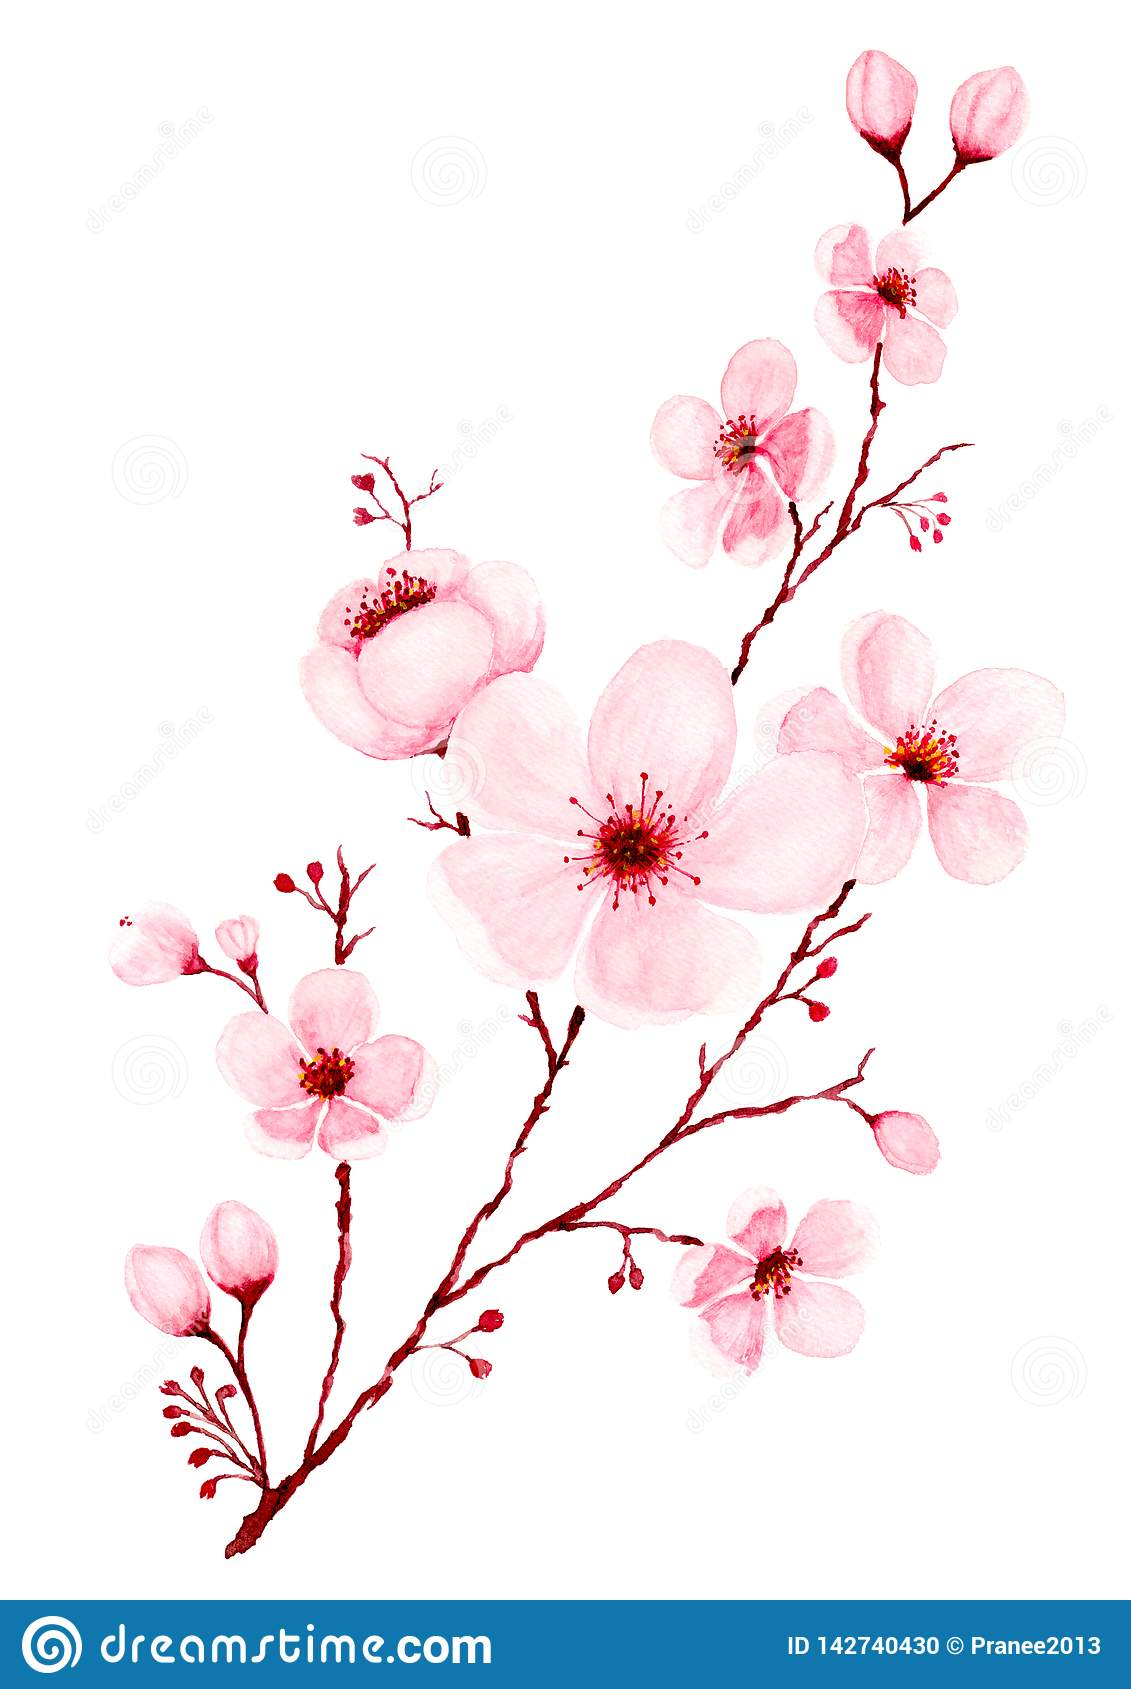 Watercolor Cherry Blossom Branch Hand Painted Stock Illustration Illustration Of Drawn Cherry 142740430